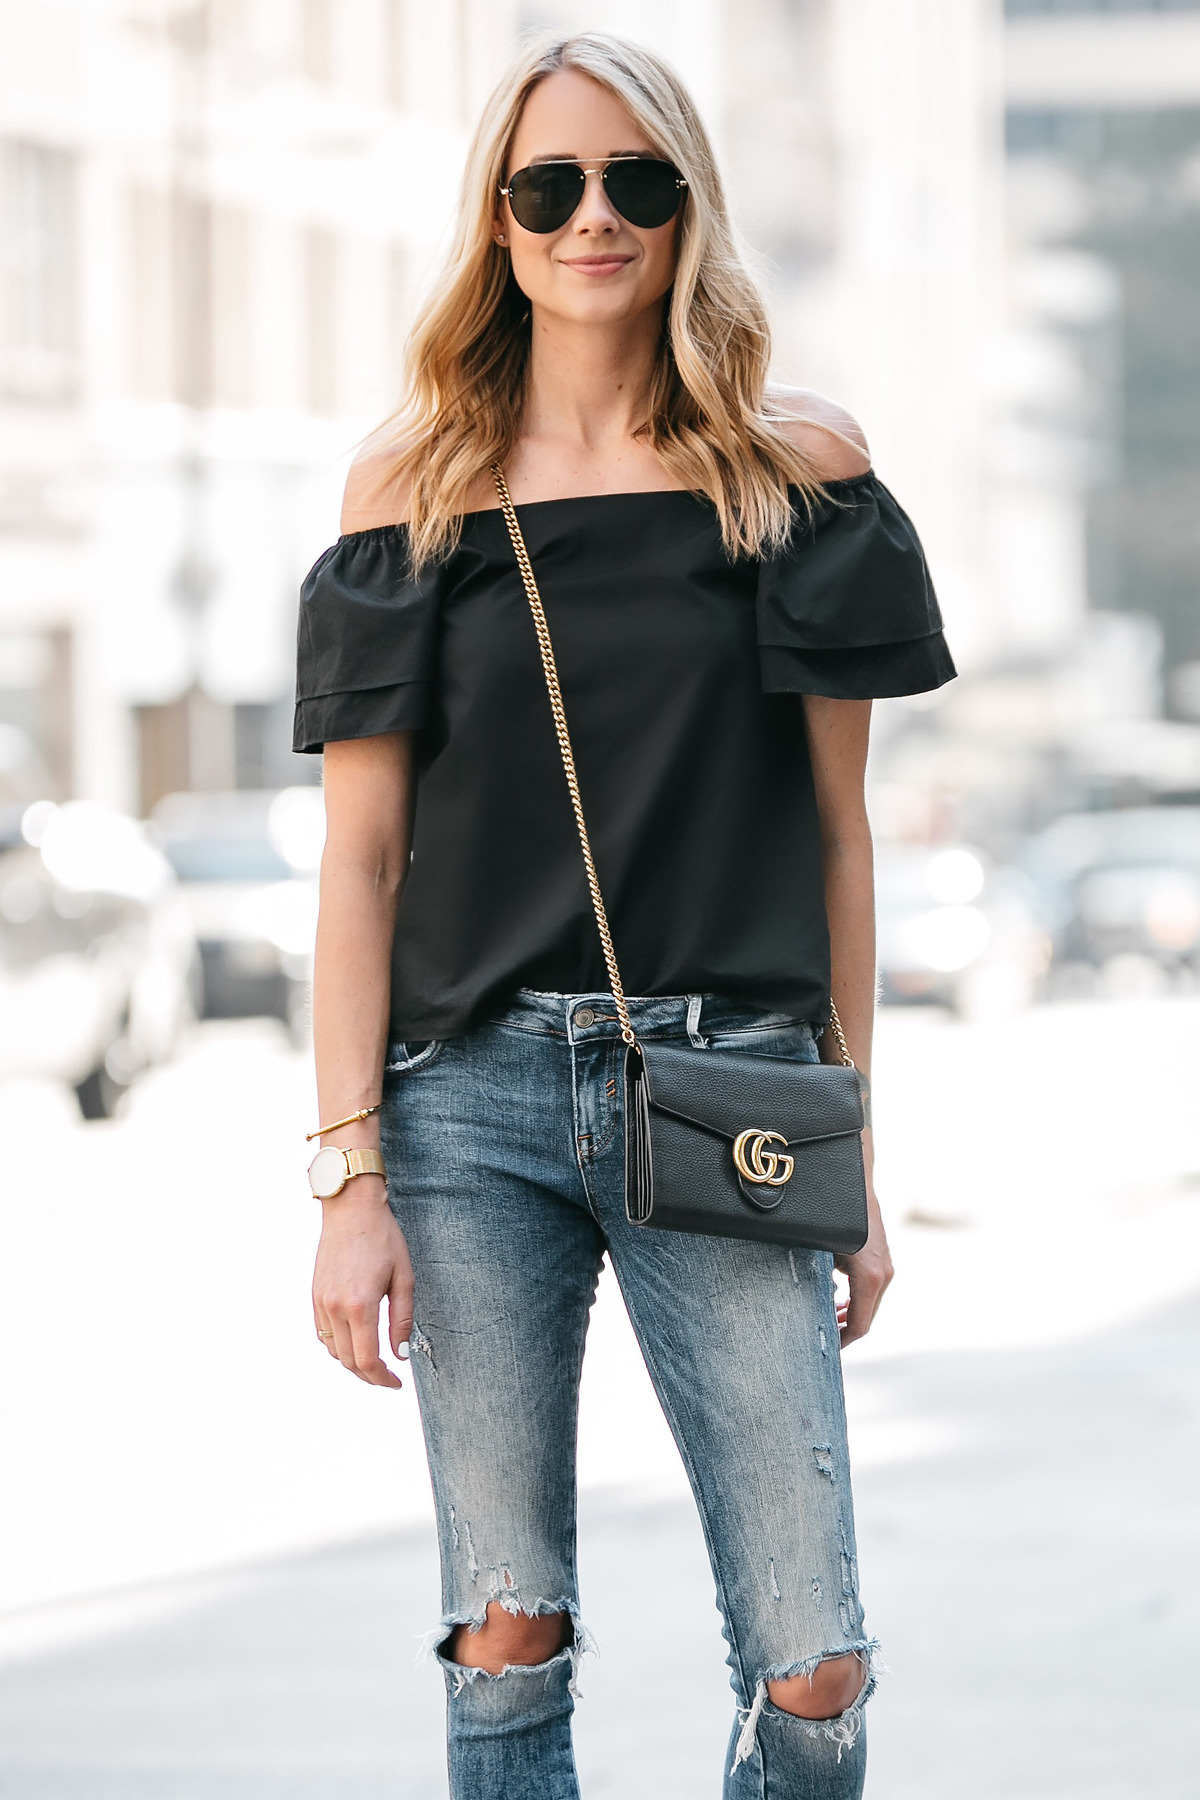 Fashion Jackson, Dallas Blogger, Fashion Blogger, Street Style, Black Short Sleeve Off-the-shoulder top, Zara Denim Ripped Skinny Jeans, Gucci Marmont Handbag